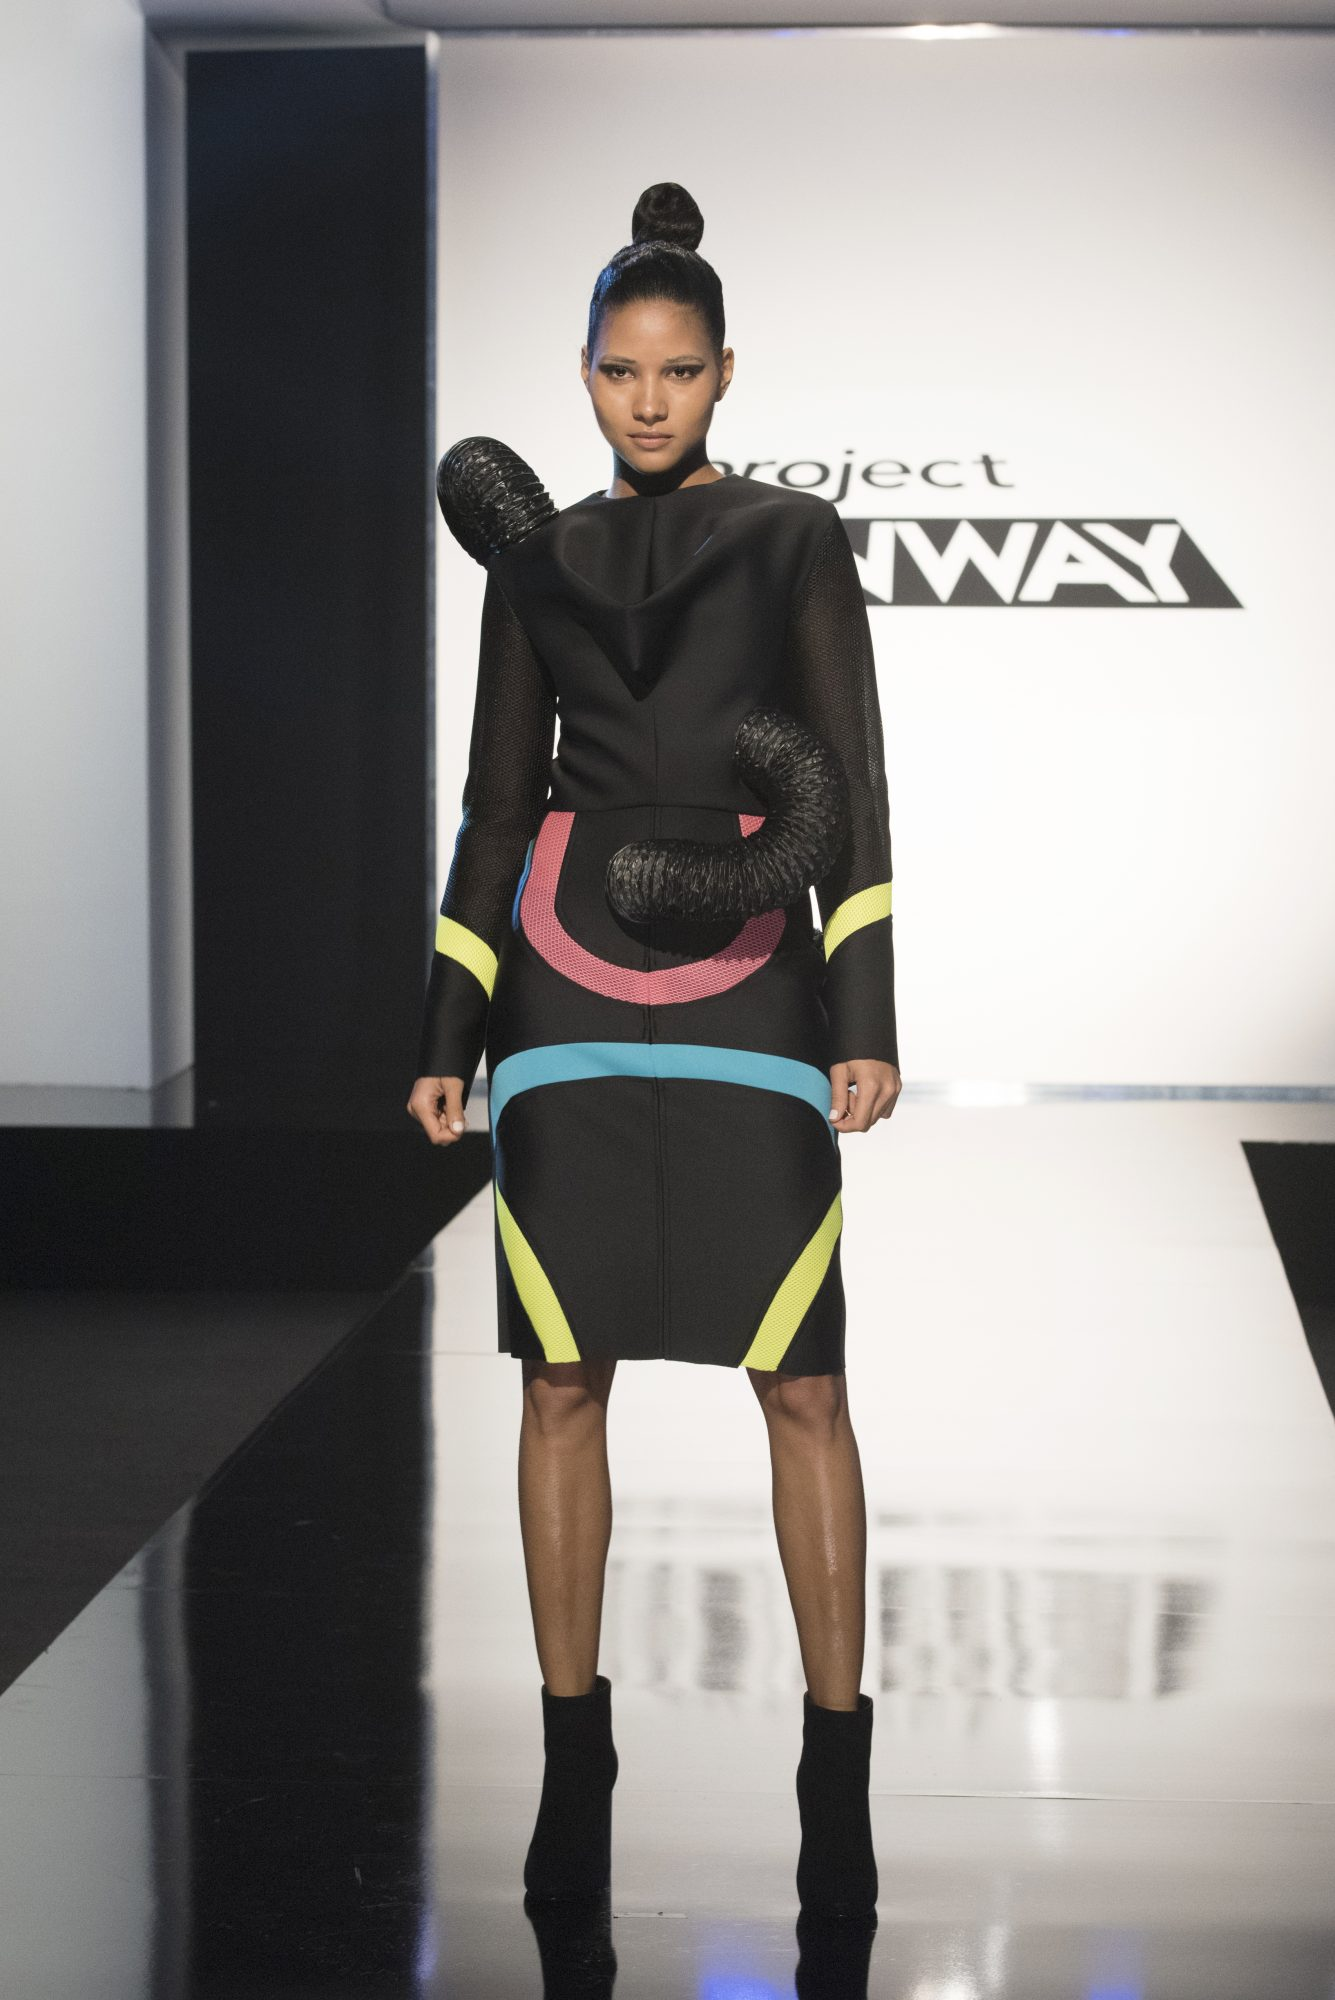 Project Runway season 15, episode 11, Cornelius look